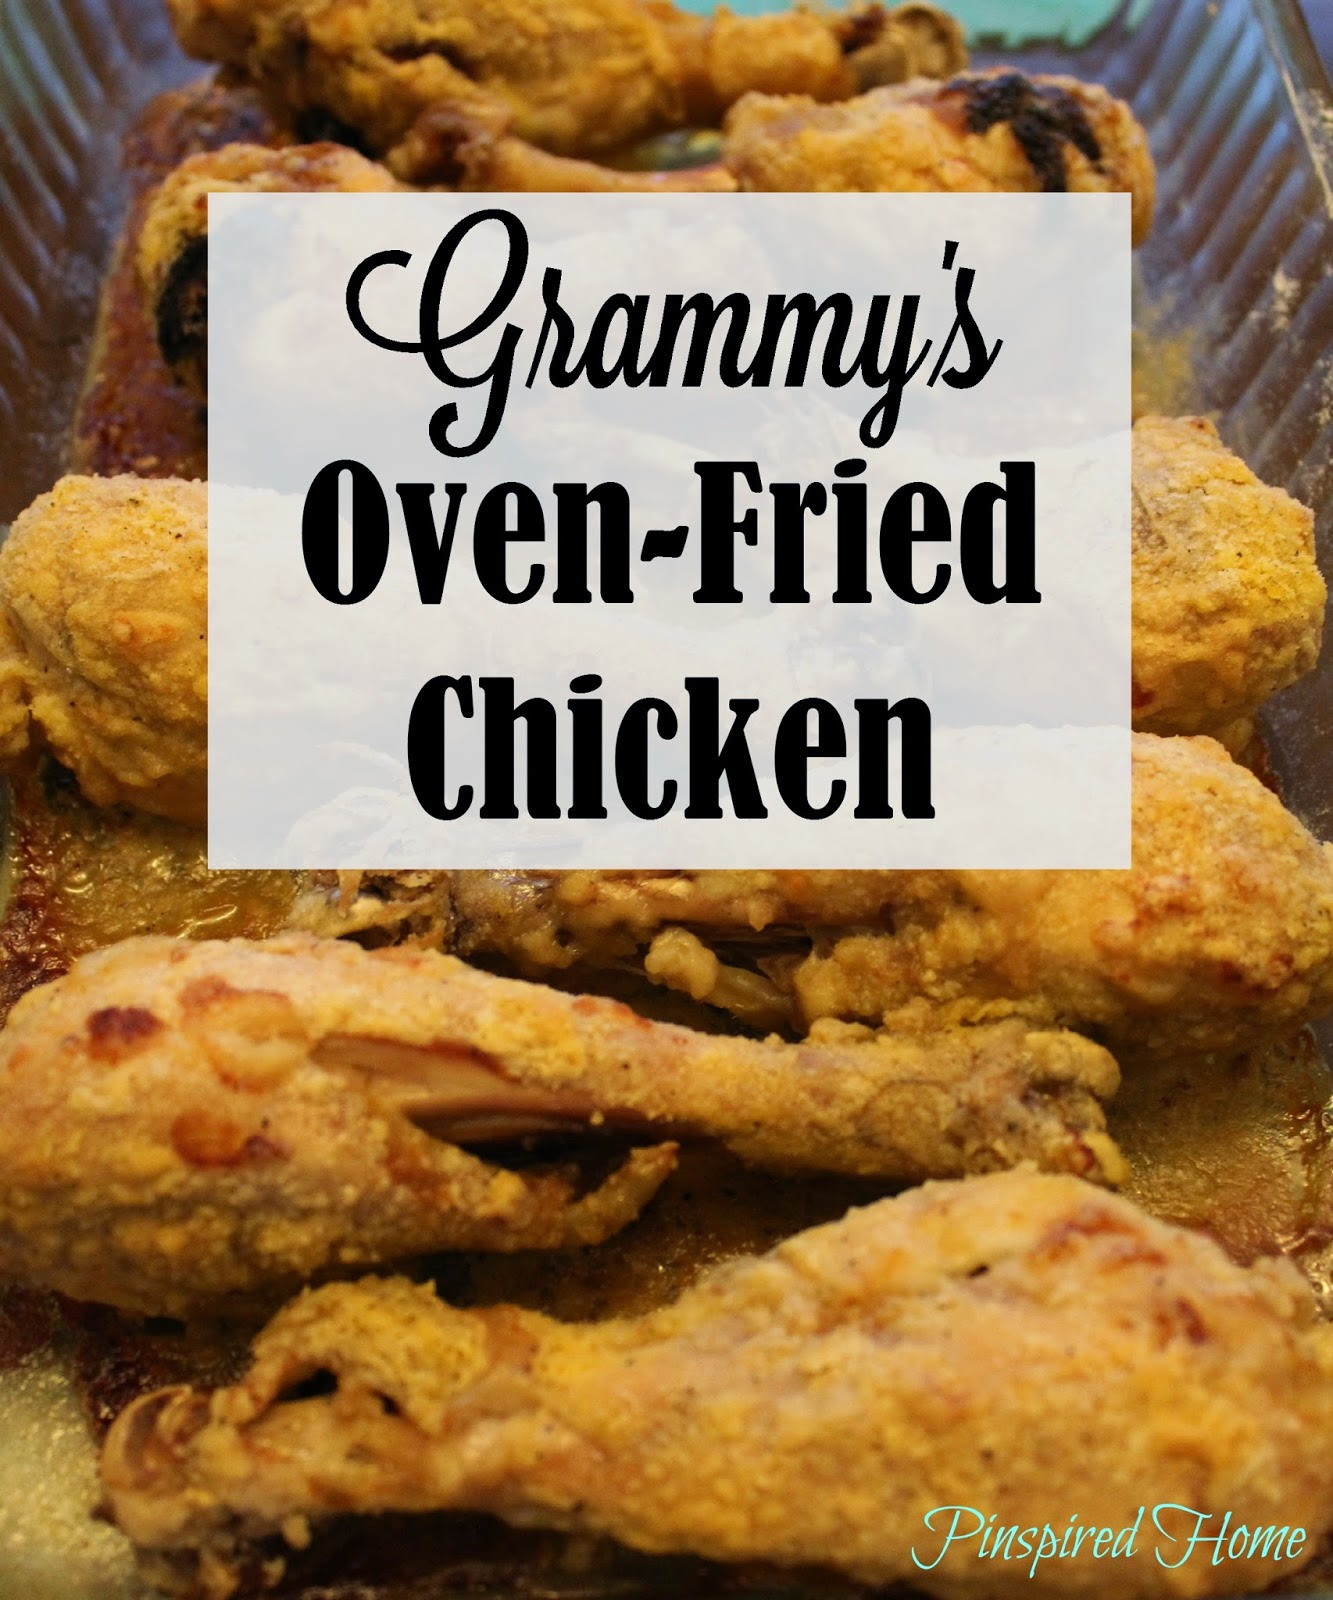 http://pinspiredhome.blogspot.com/2015/03/grammys-oven-fried-chicken.html